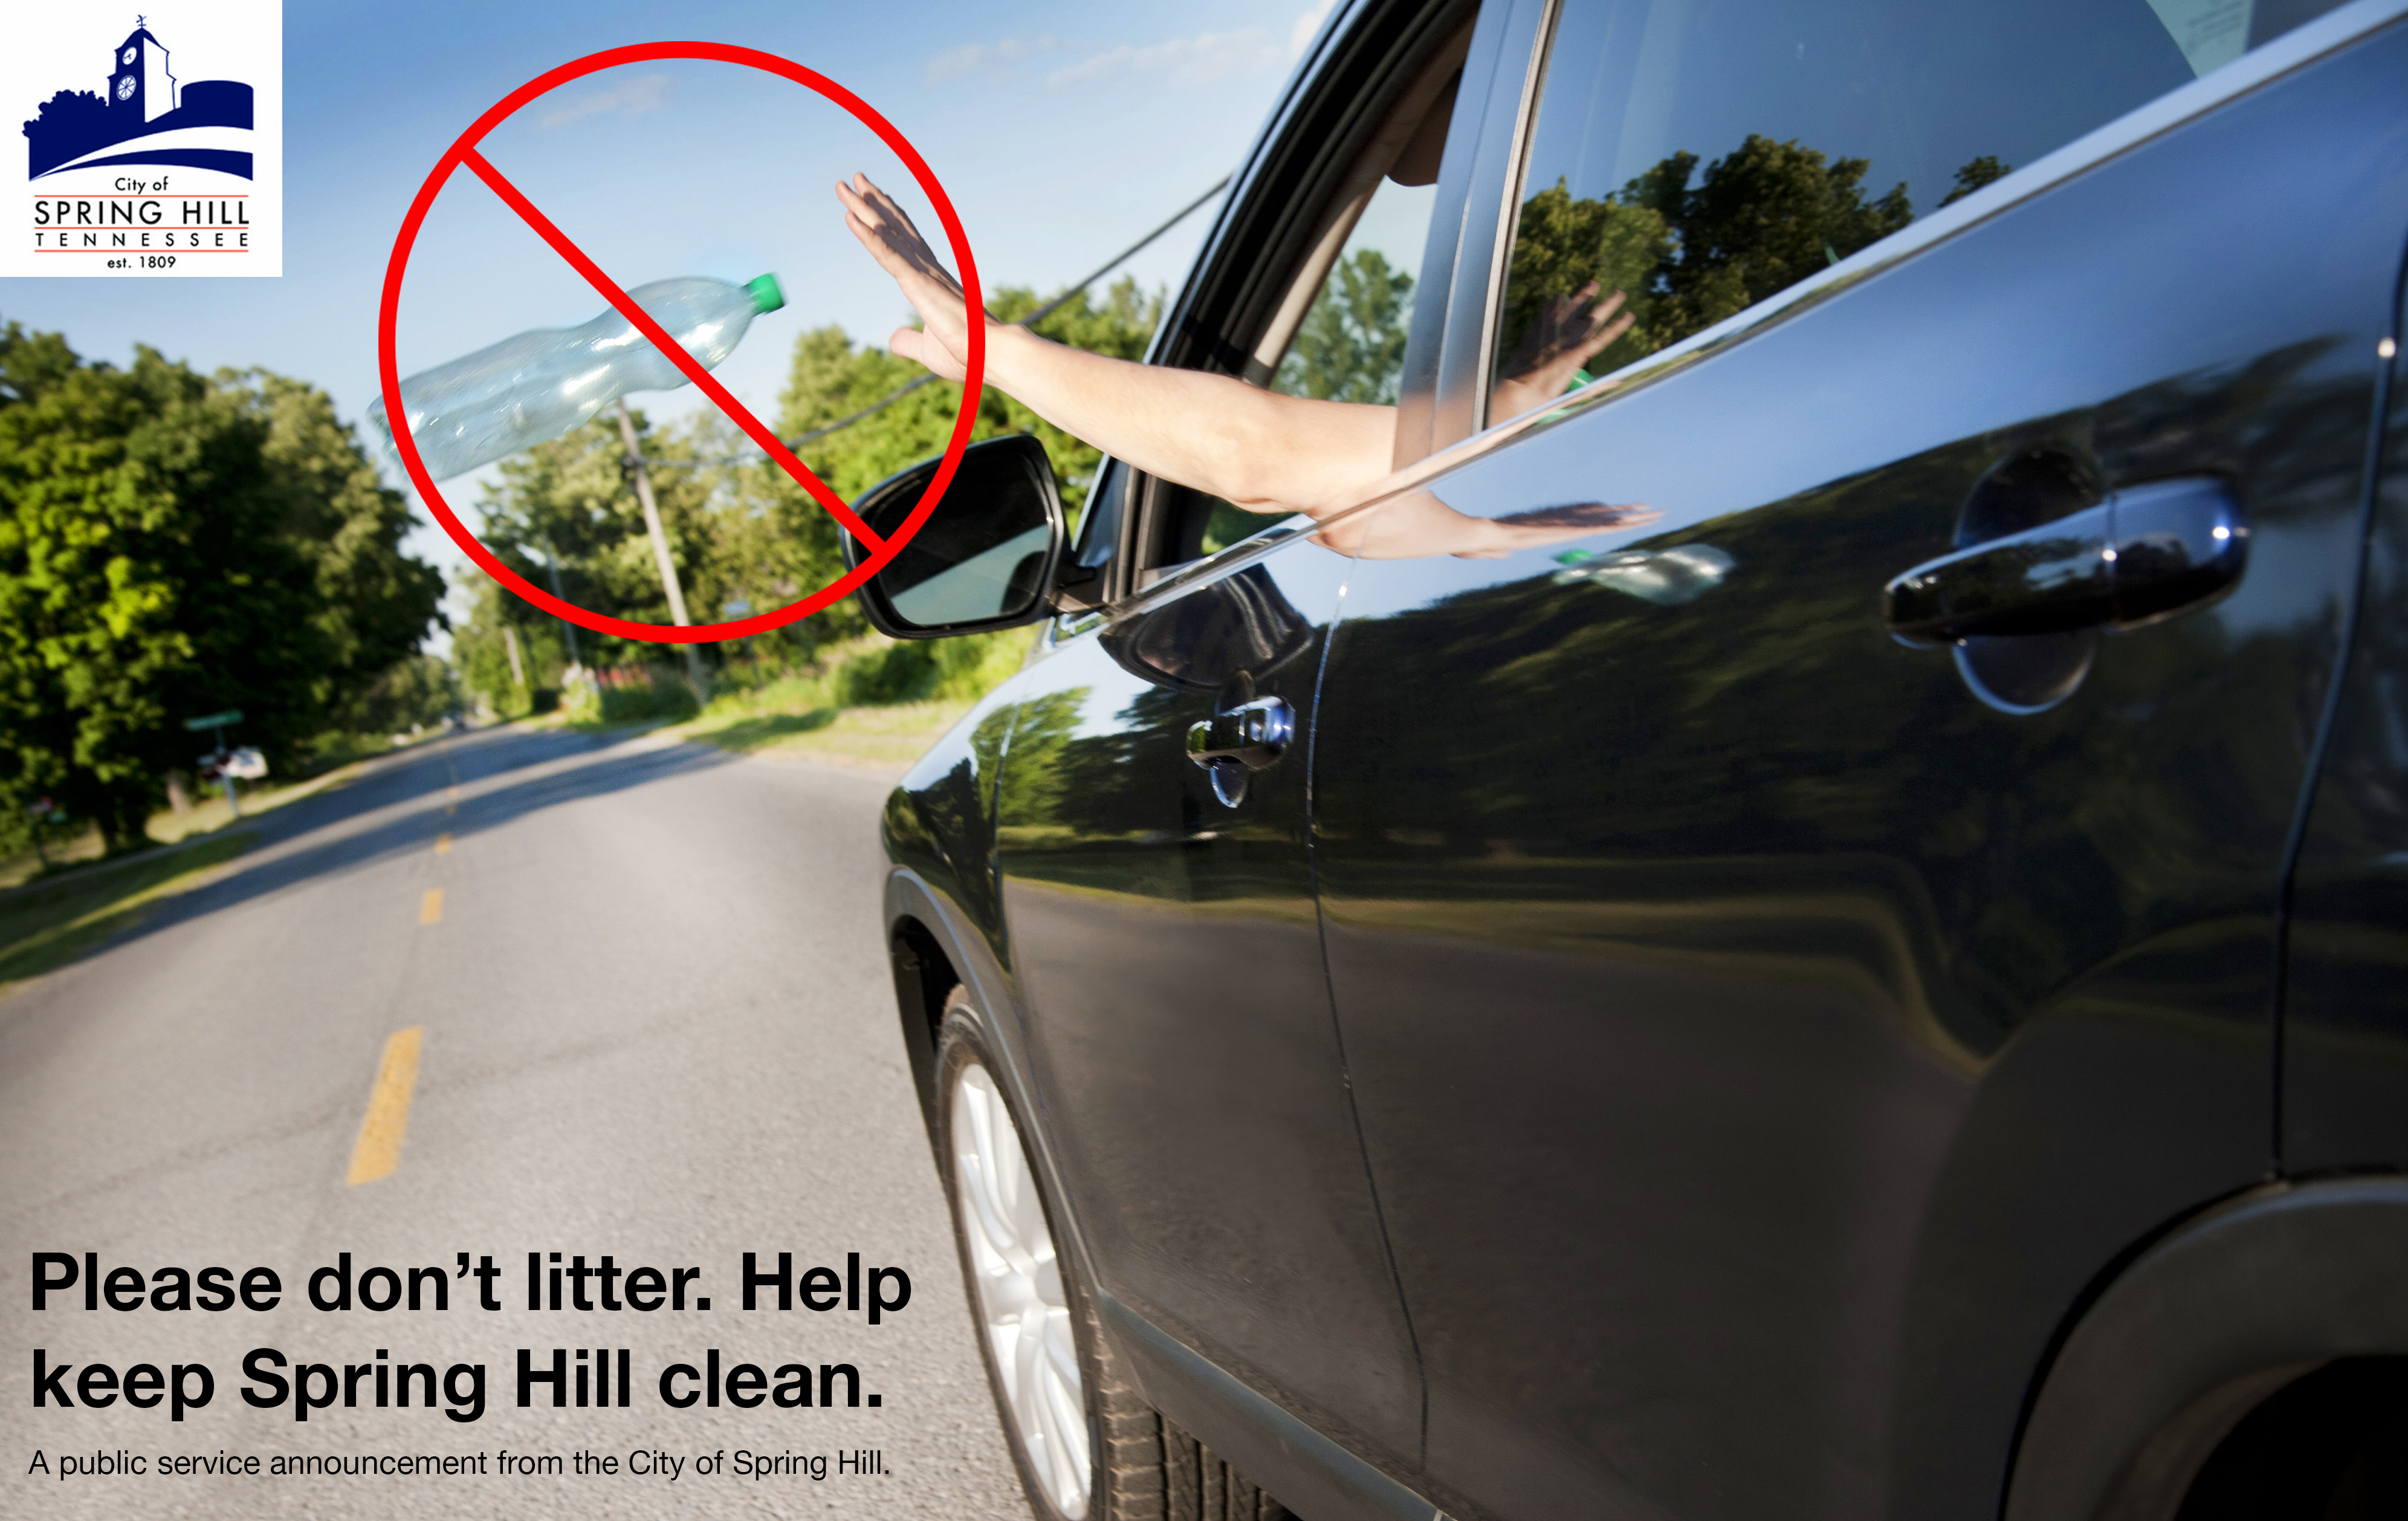 PSA Please don't litter. Help keep Spring Hill clean